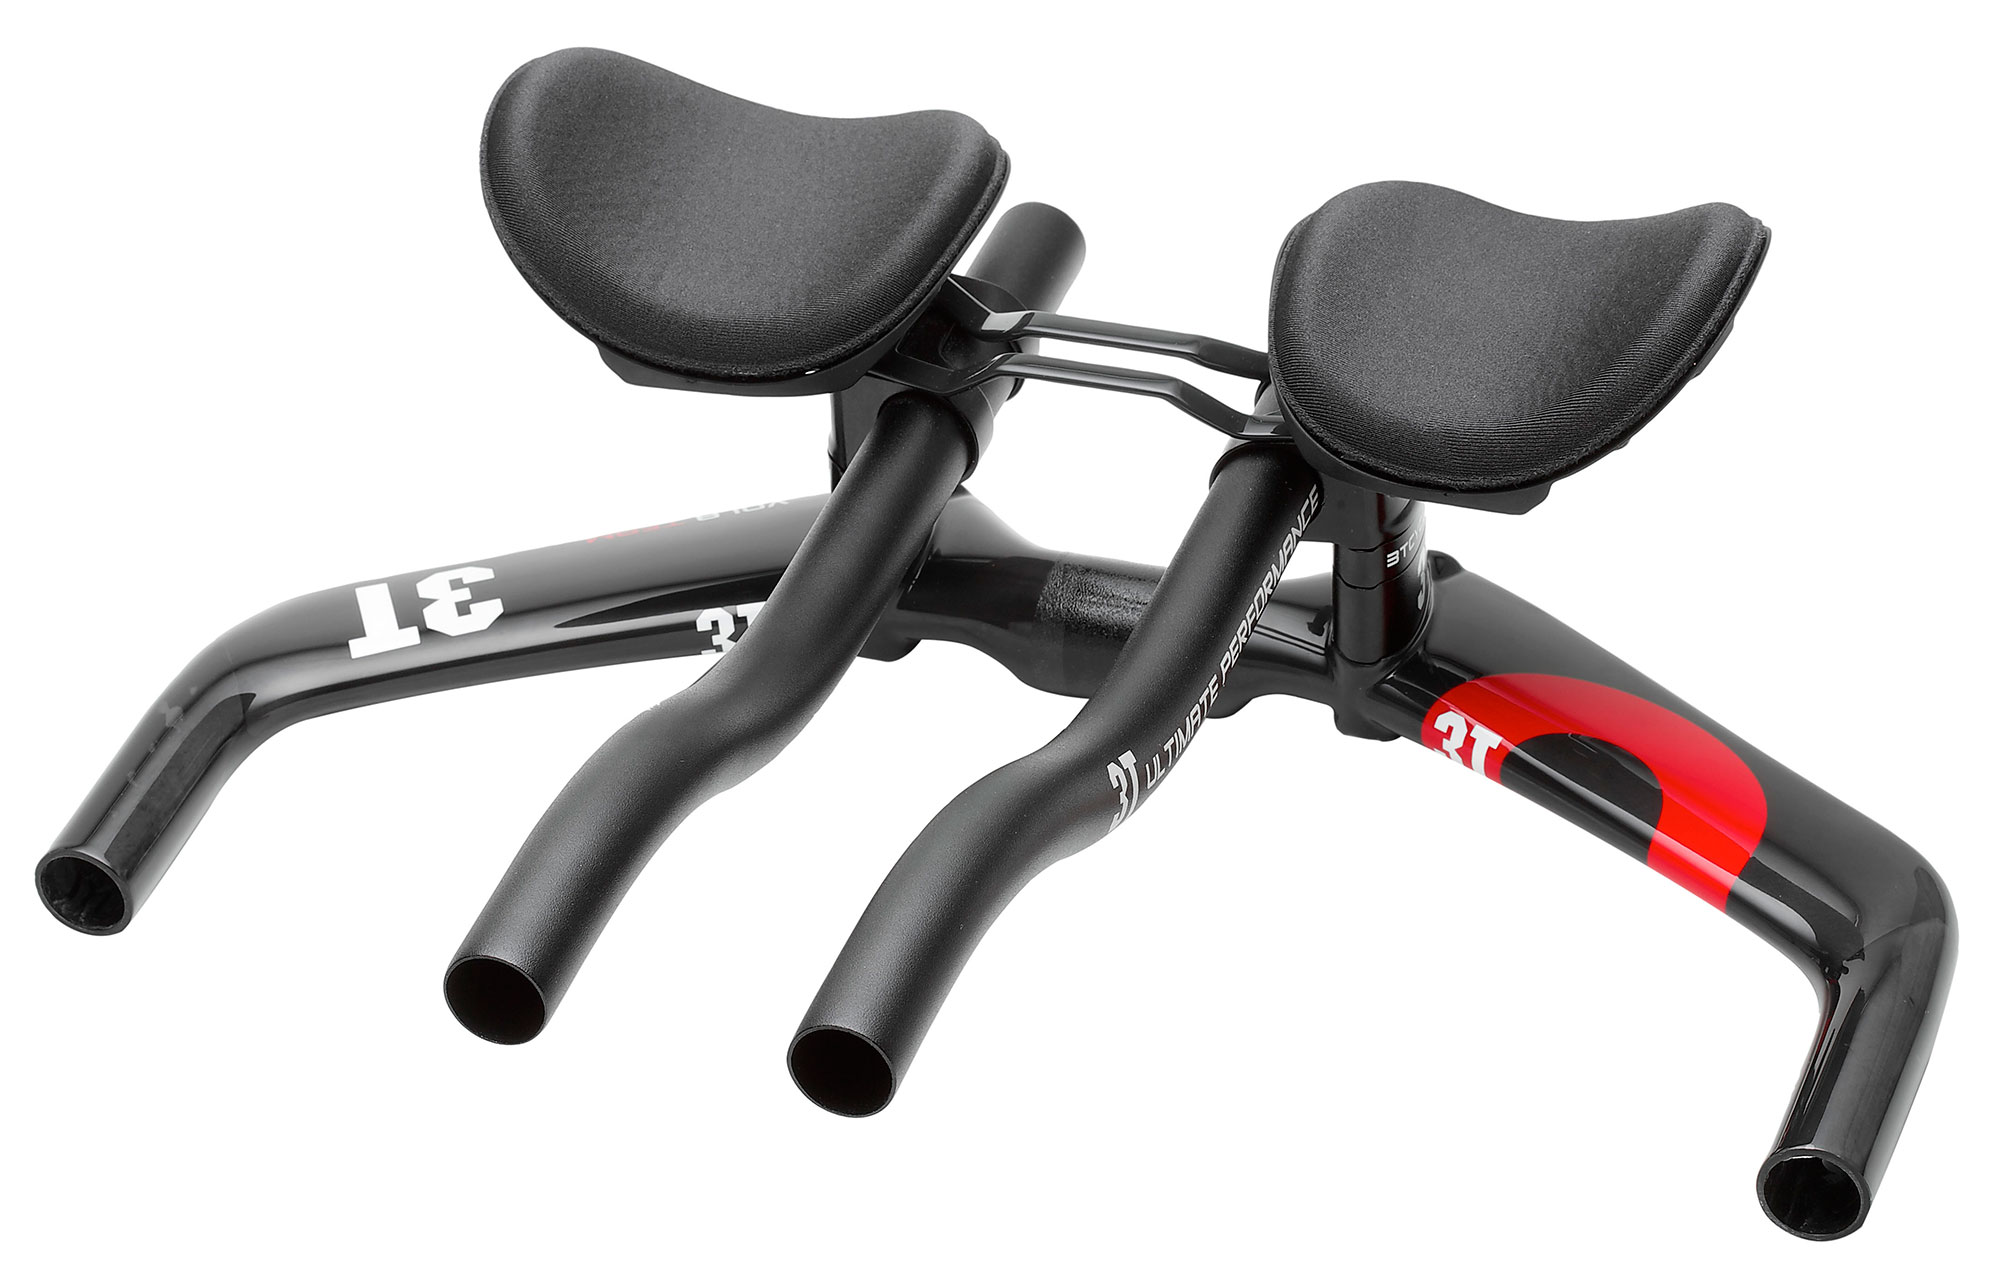 Details about  /3T VOLA PRO  Complete Triathlon Time Trial Handlebar W// EXTENTIONS /& EXTRAS